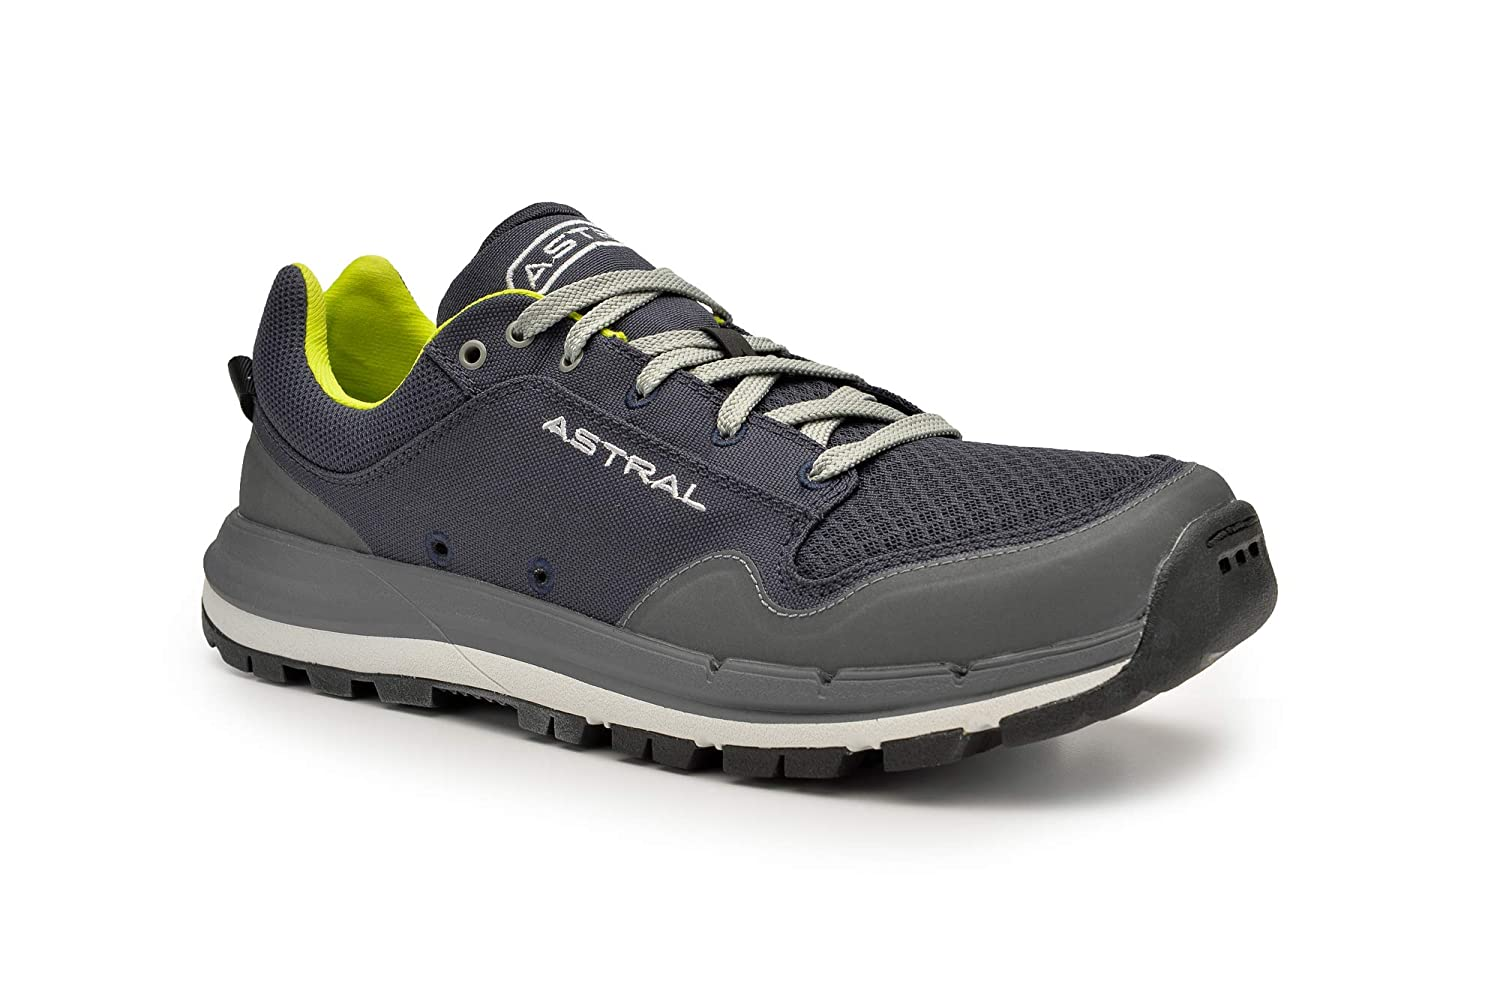 bf4132f78b0e Amazon.com  Astral Men s TR1 Junction Minimalist Hiking Shoes